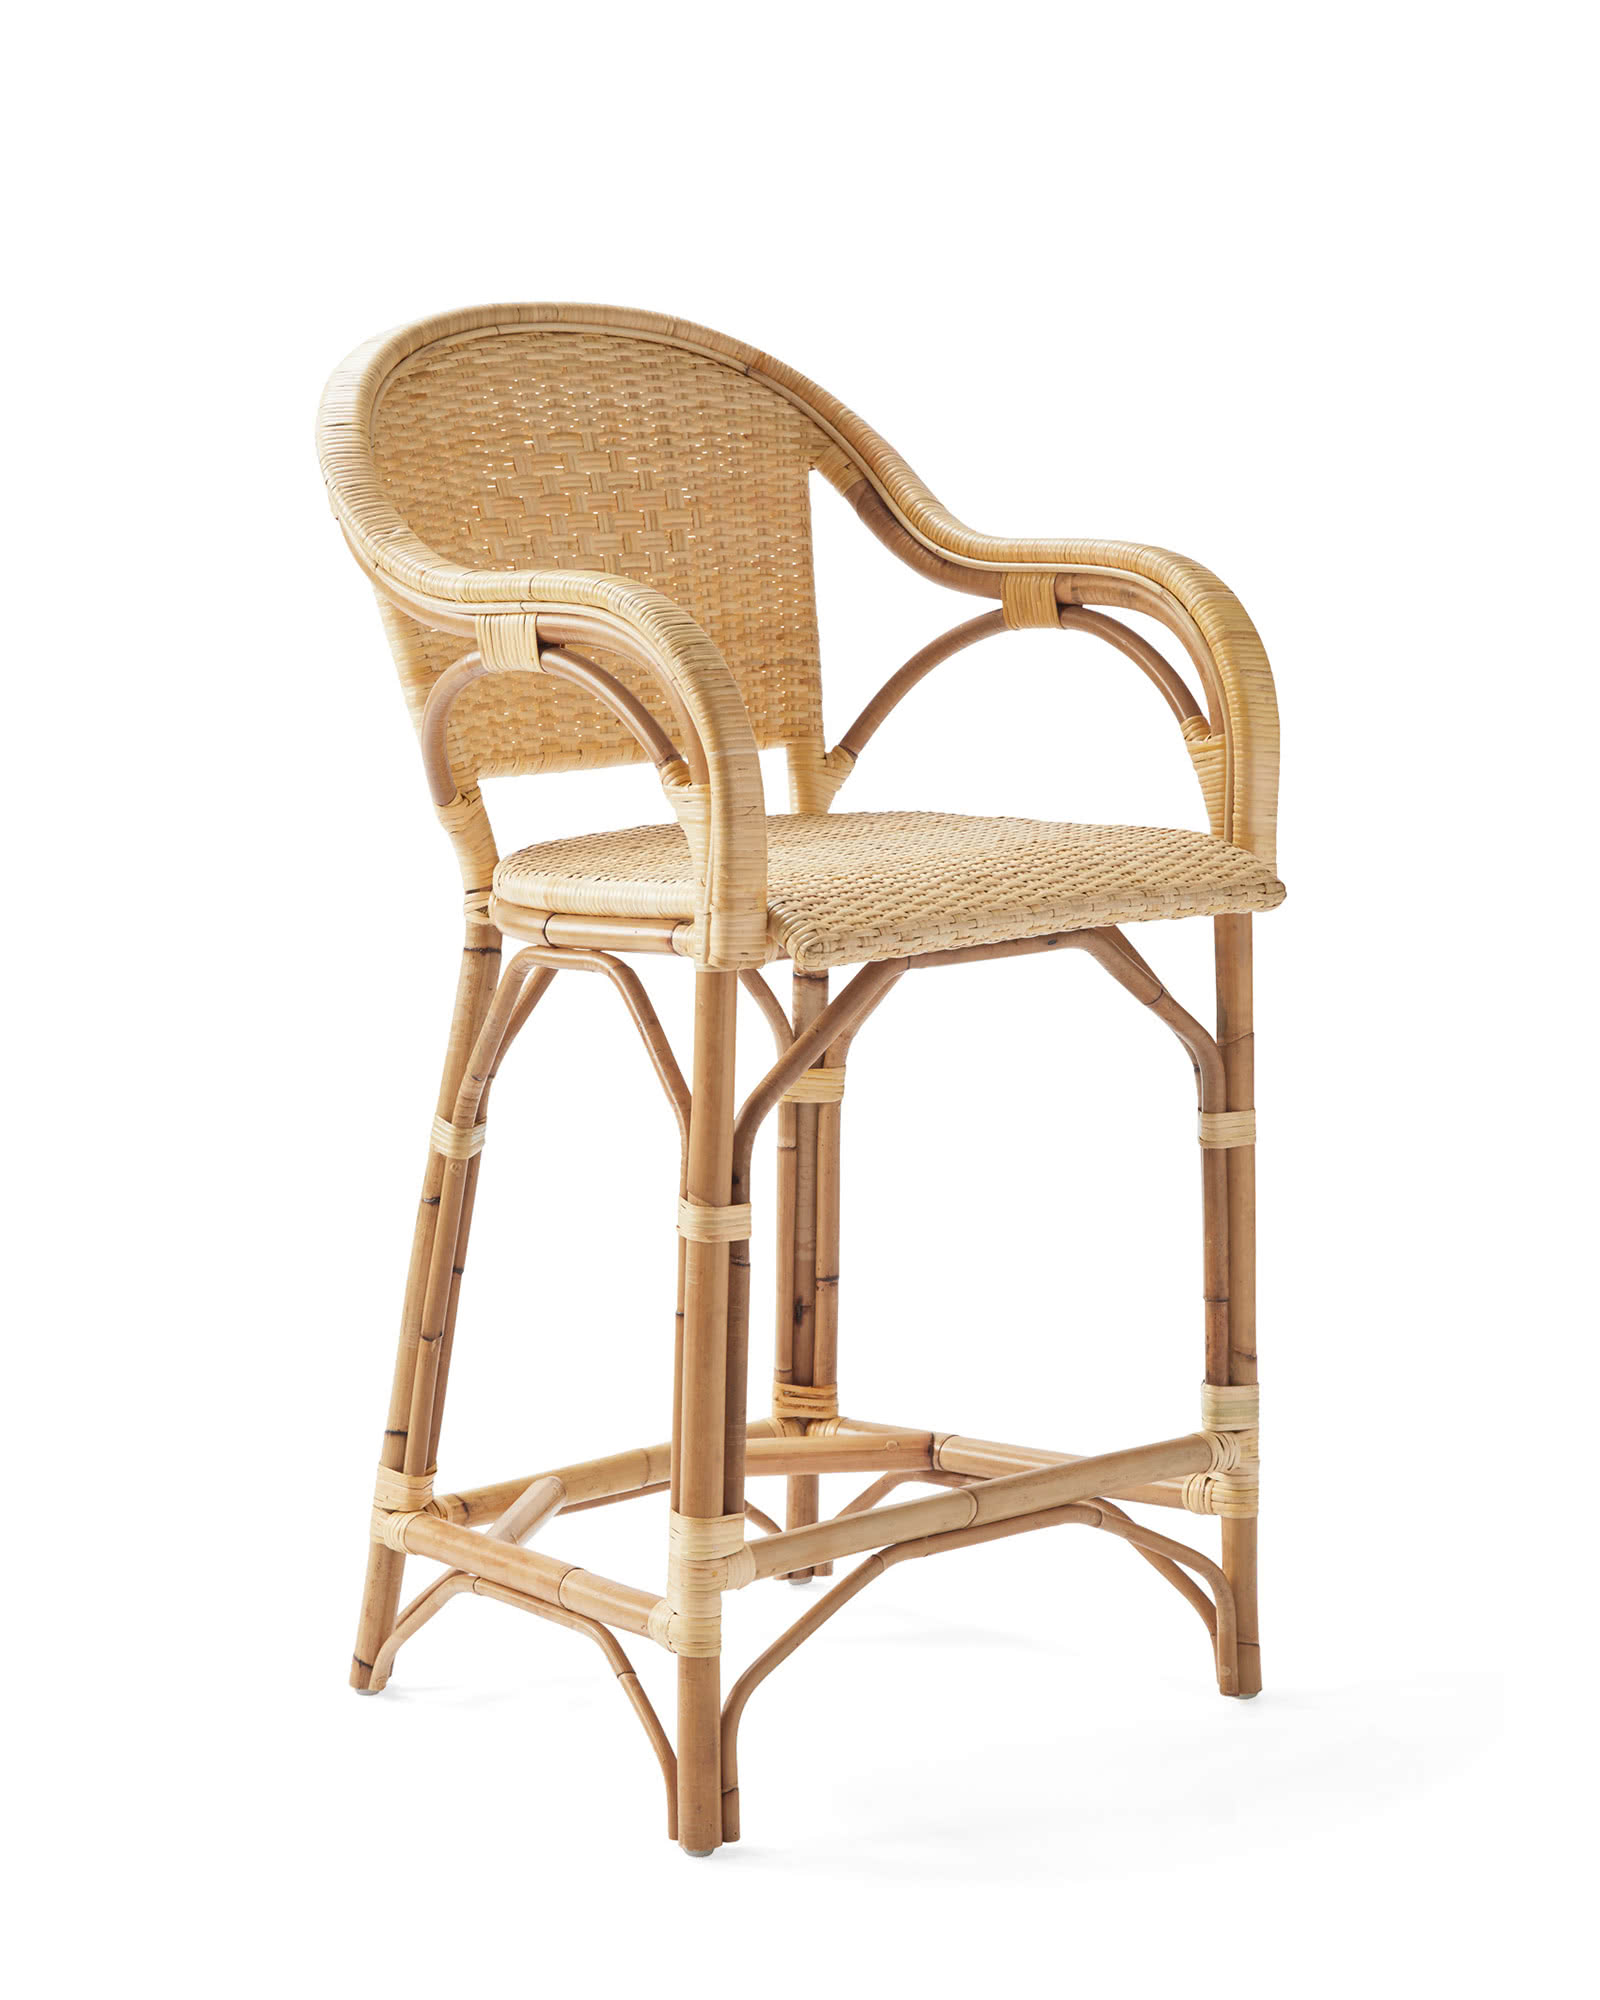 you know we can't resist  rattan  - especially when it's 20% off!